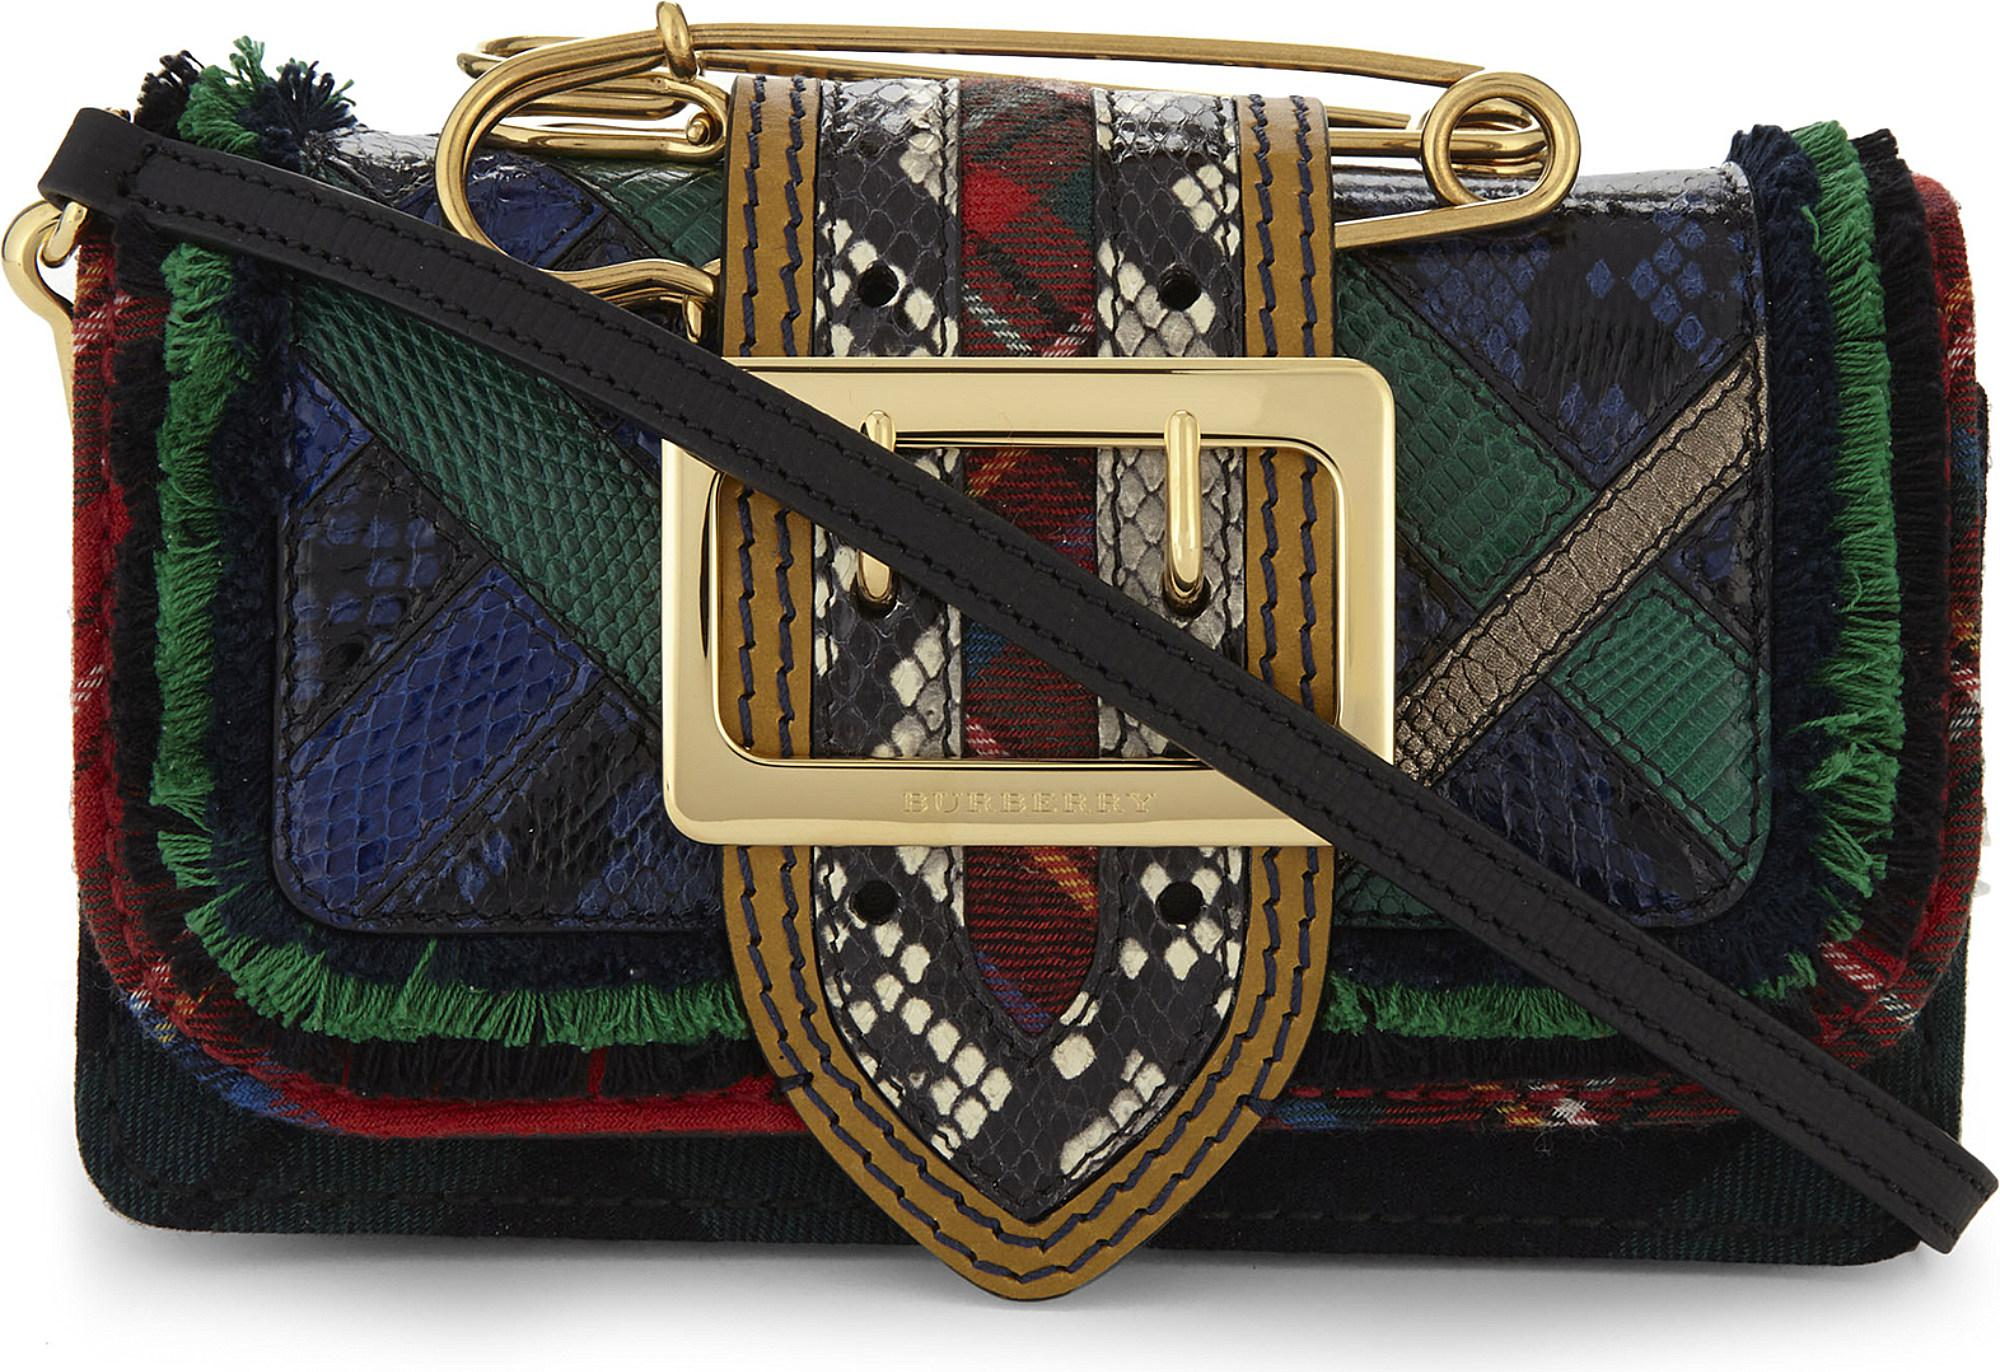 Burberry Buckle Patchwork Leather Shoulder Bag - Lyst bfda0007fc74f